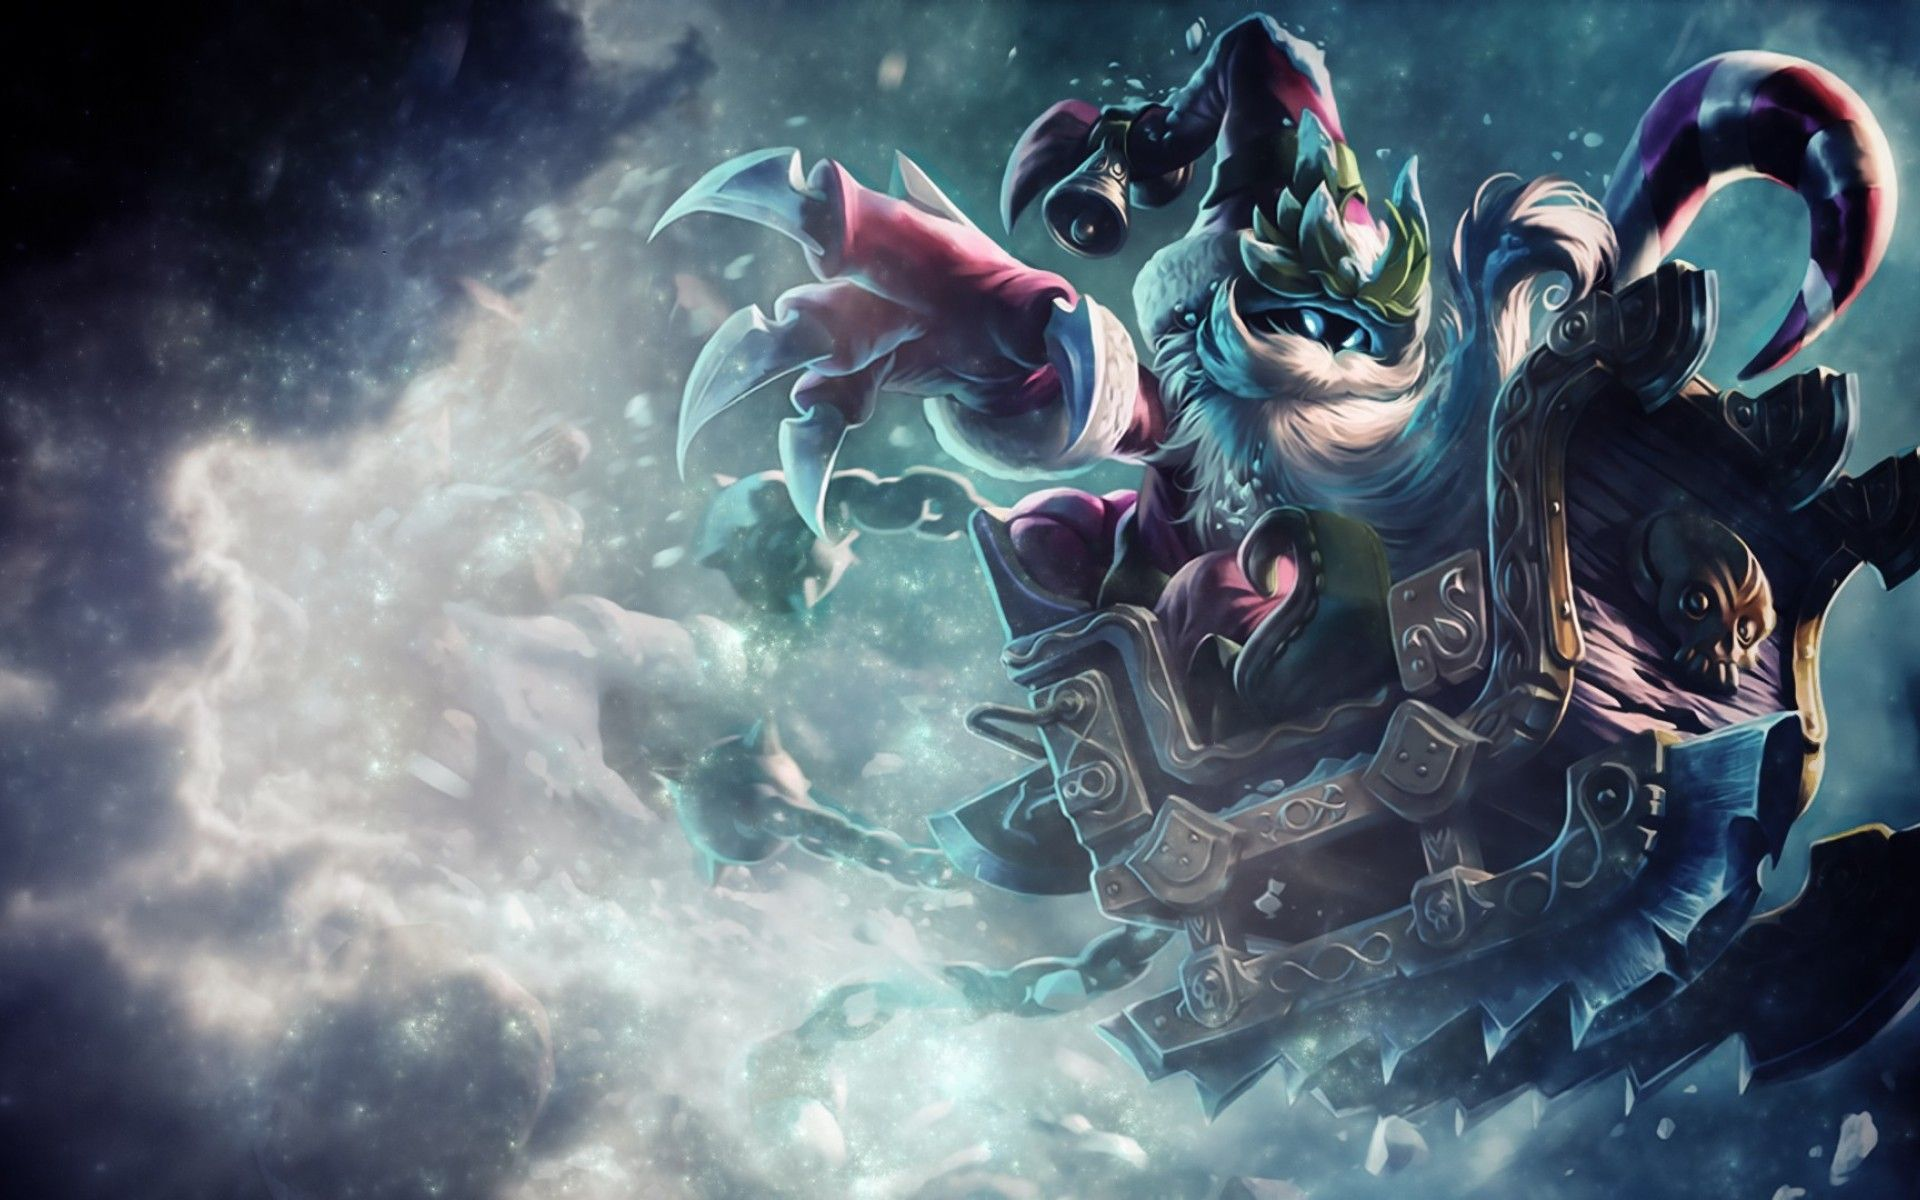 League of legends wallpapers group 19201200 lol wallpapers 37 league of legends wallpapers group 19201200 lol wallpapers 37 wallpapers adorable voltagebd Gallery